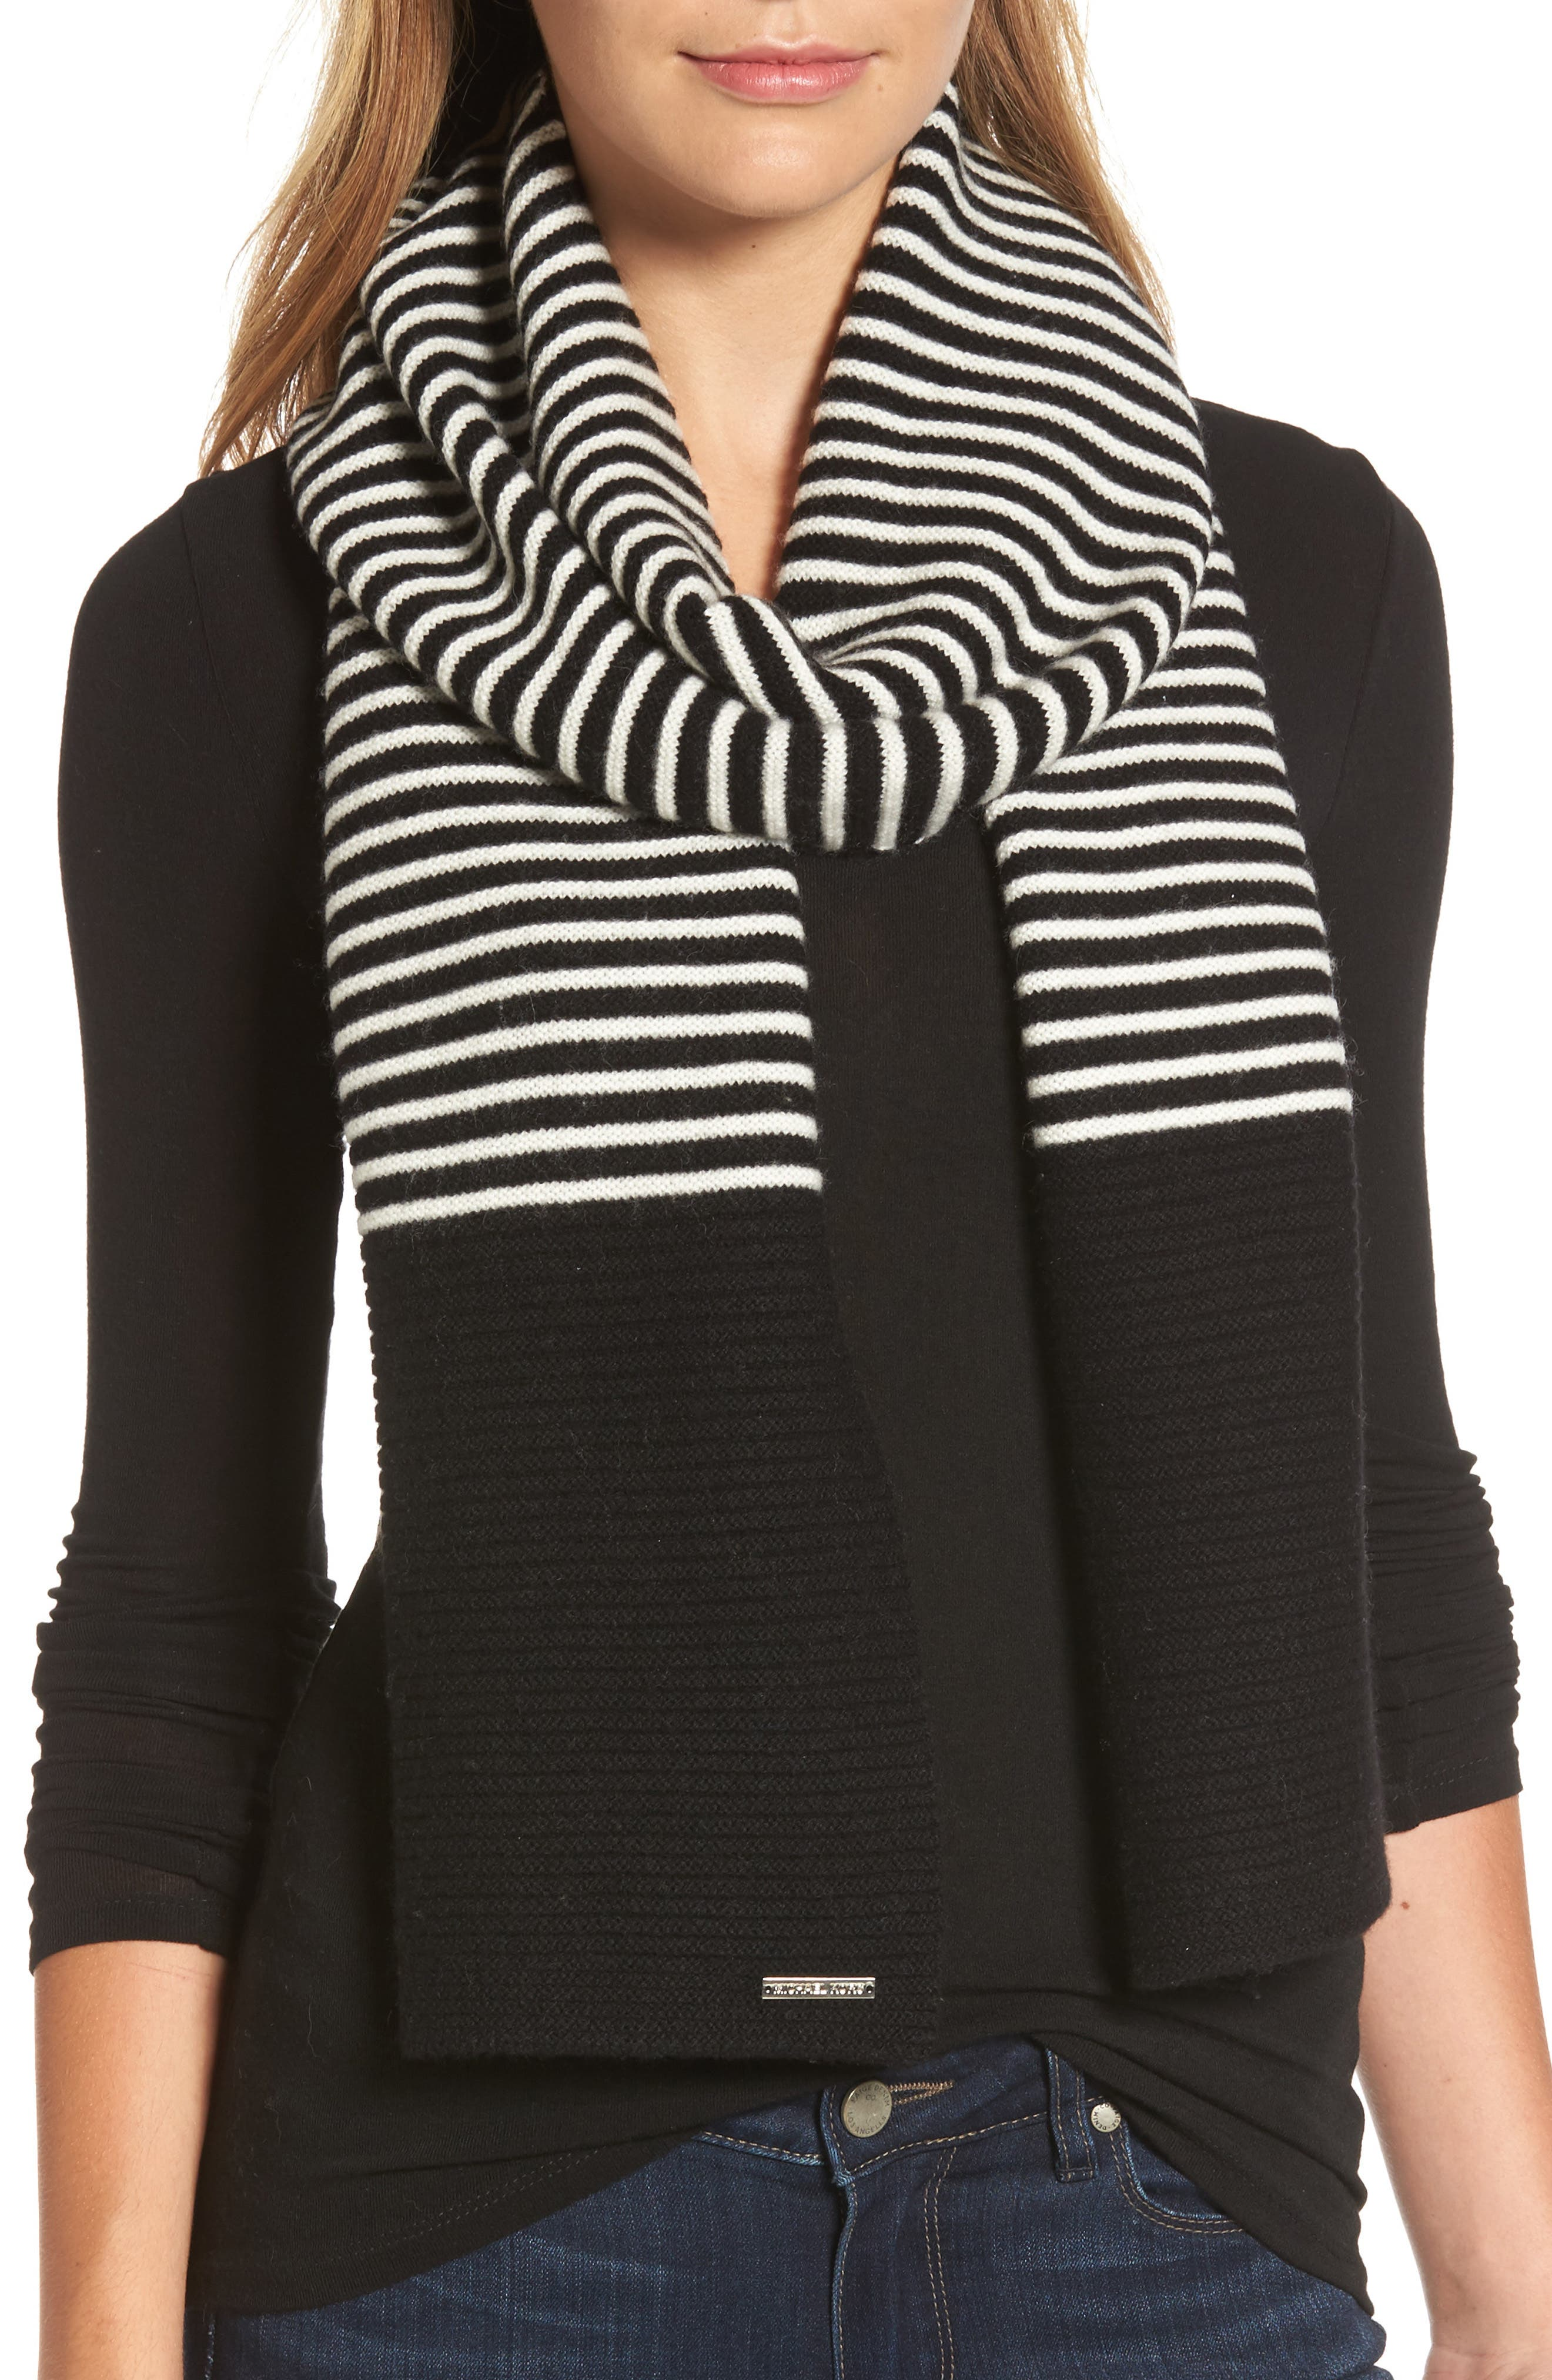 Double Links Wool & Cashmere Scarf,                             Main thumbnail 1, color,                             Black/ Cream